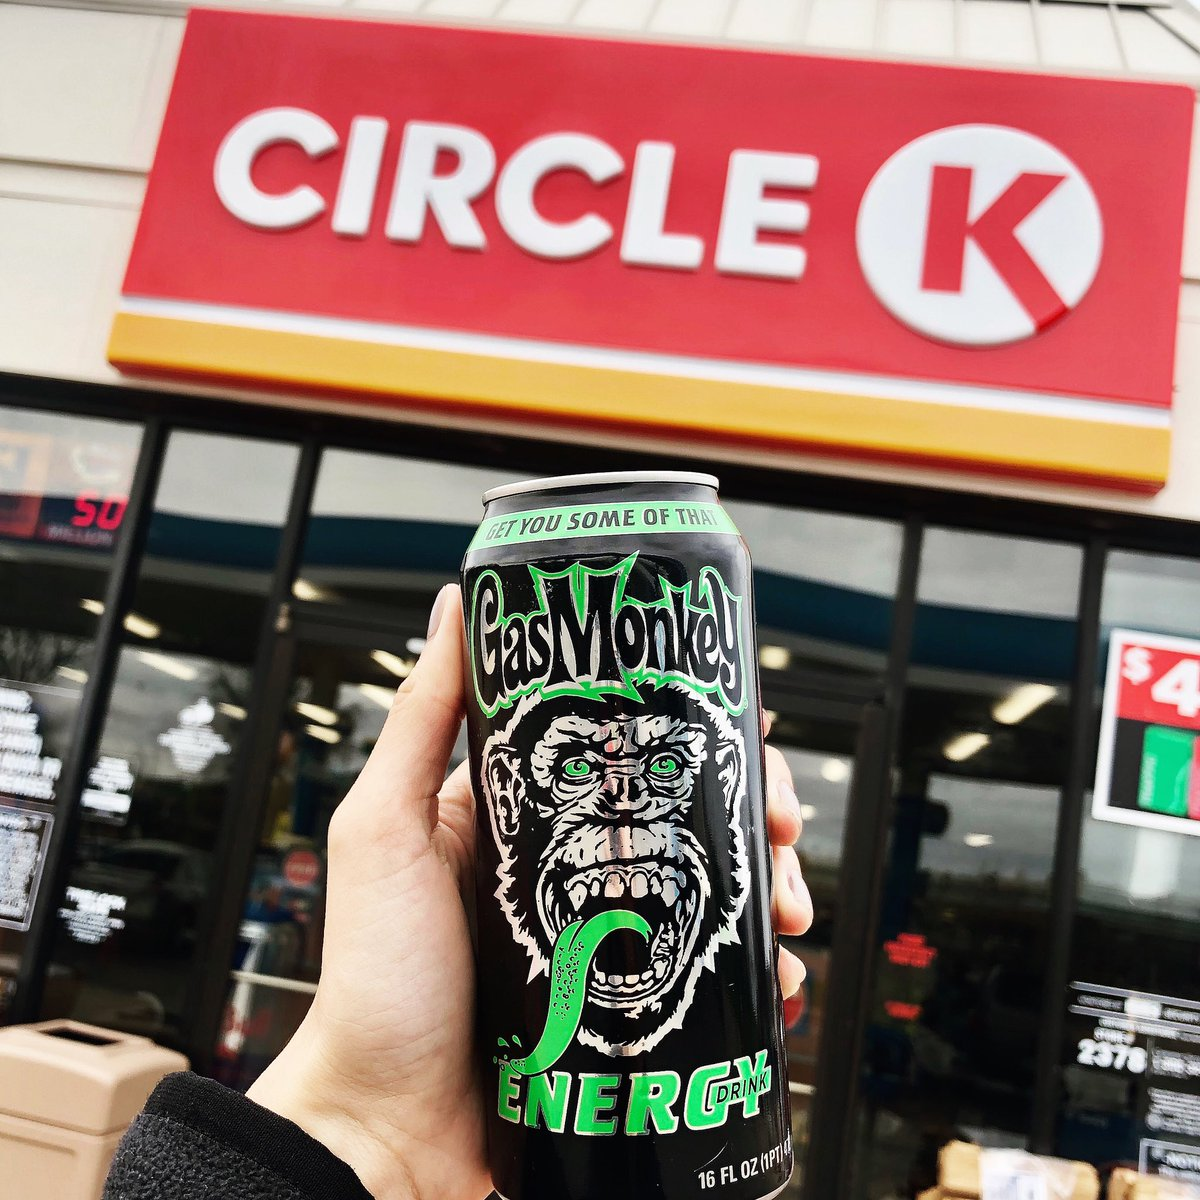 @circlektexas has your back!  Swing by and pick up some Gas Monkey Energy!  Who wants one?  #like #circlek #ganci #likemyphoto #circlekstore #circlekconveniencestore #likeforlike #circlekusa #circlektexas #circlektx #gasmonkeyenergy #gysot #gasmonkey #conveniencestore #yumpic.twitter.com/7o4WV8difM